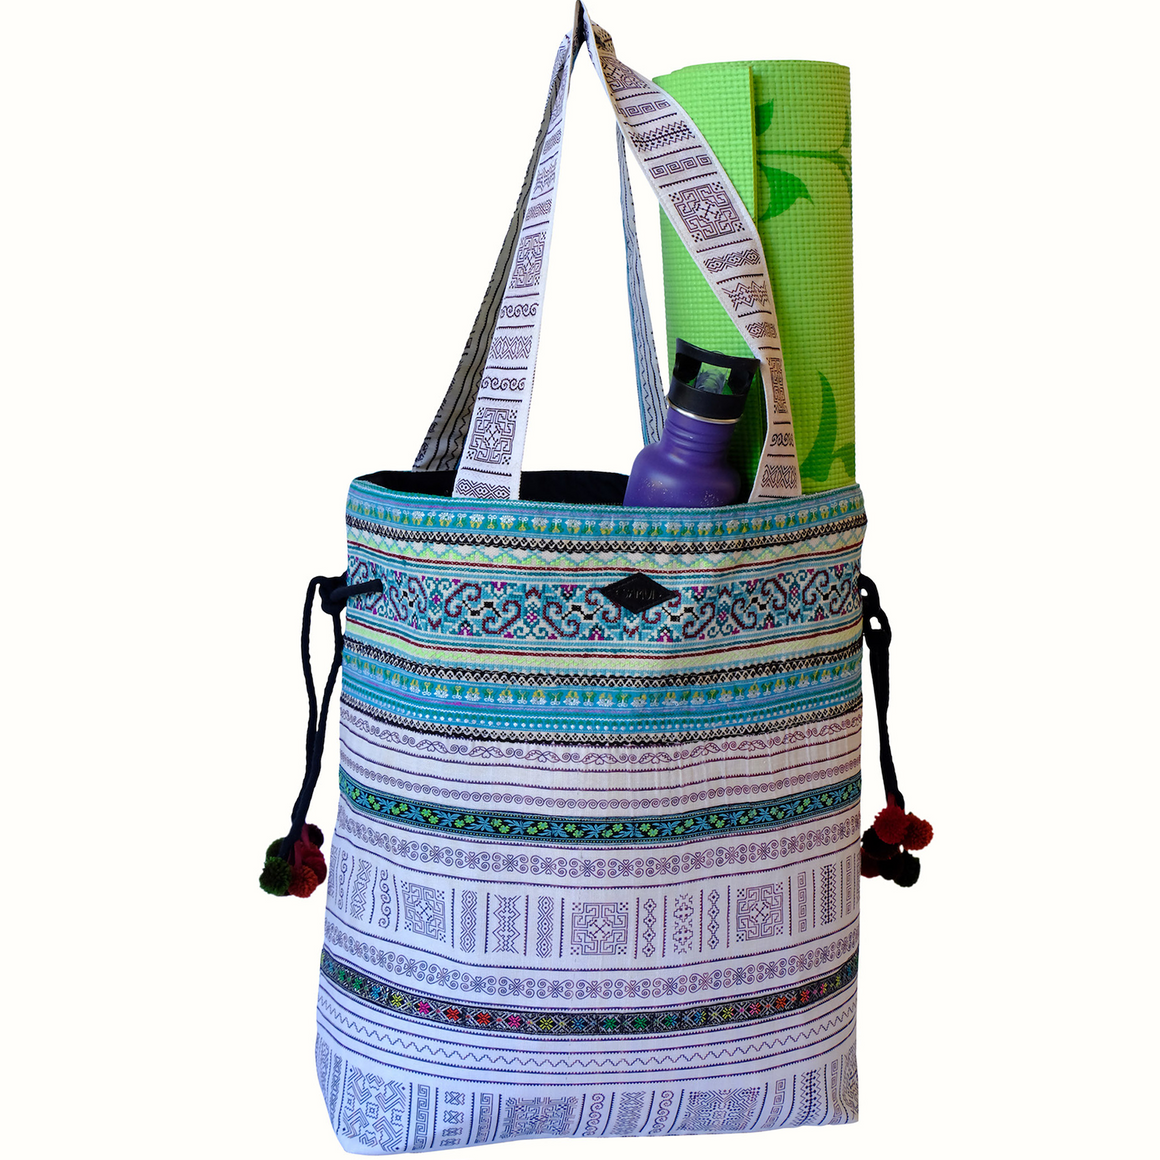 Samui Bags Tropical Island Weekender Bag Handmade Thai Bag